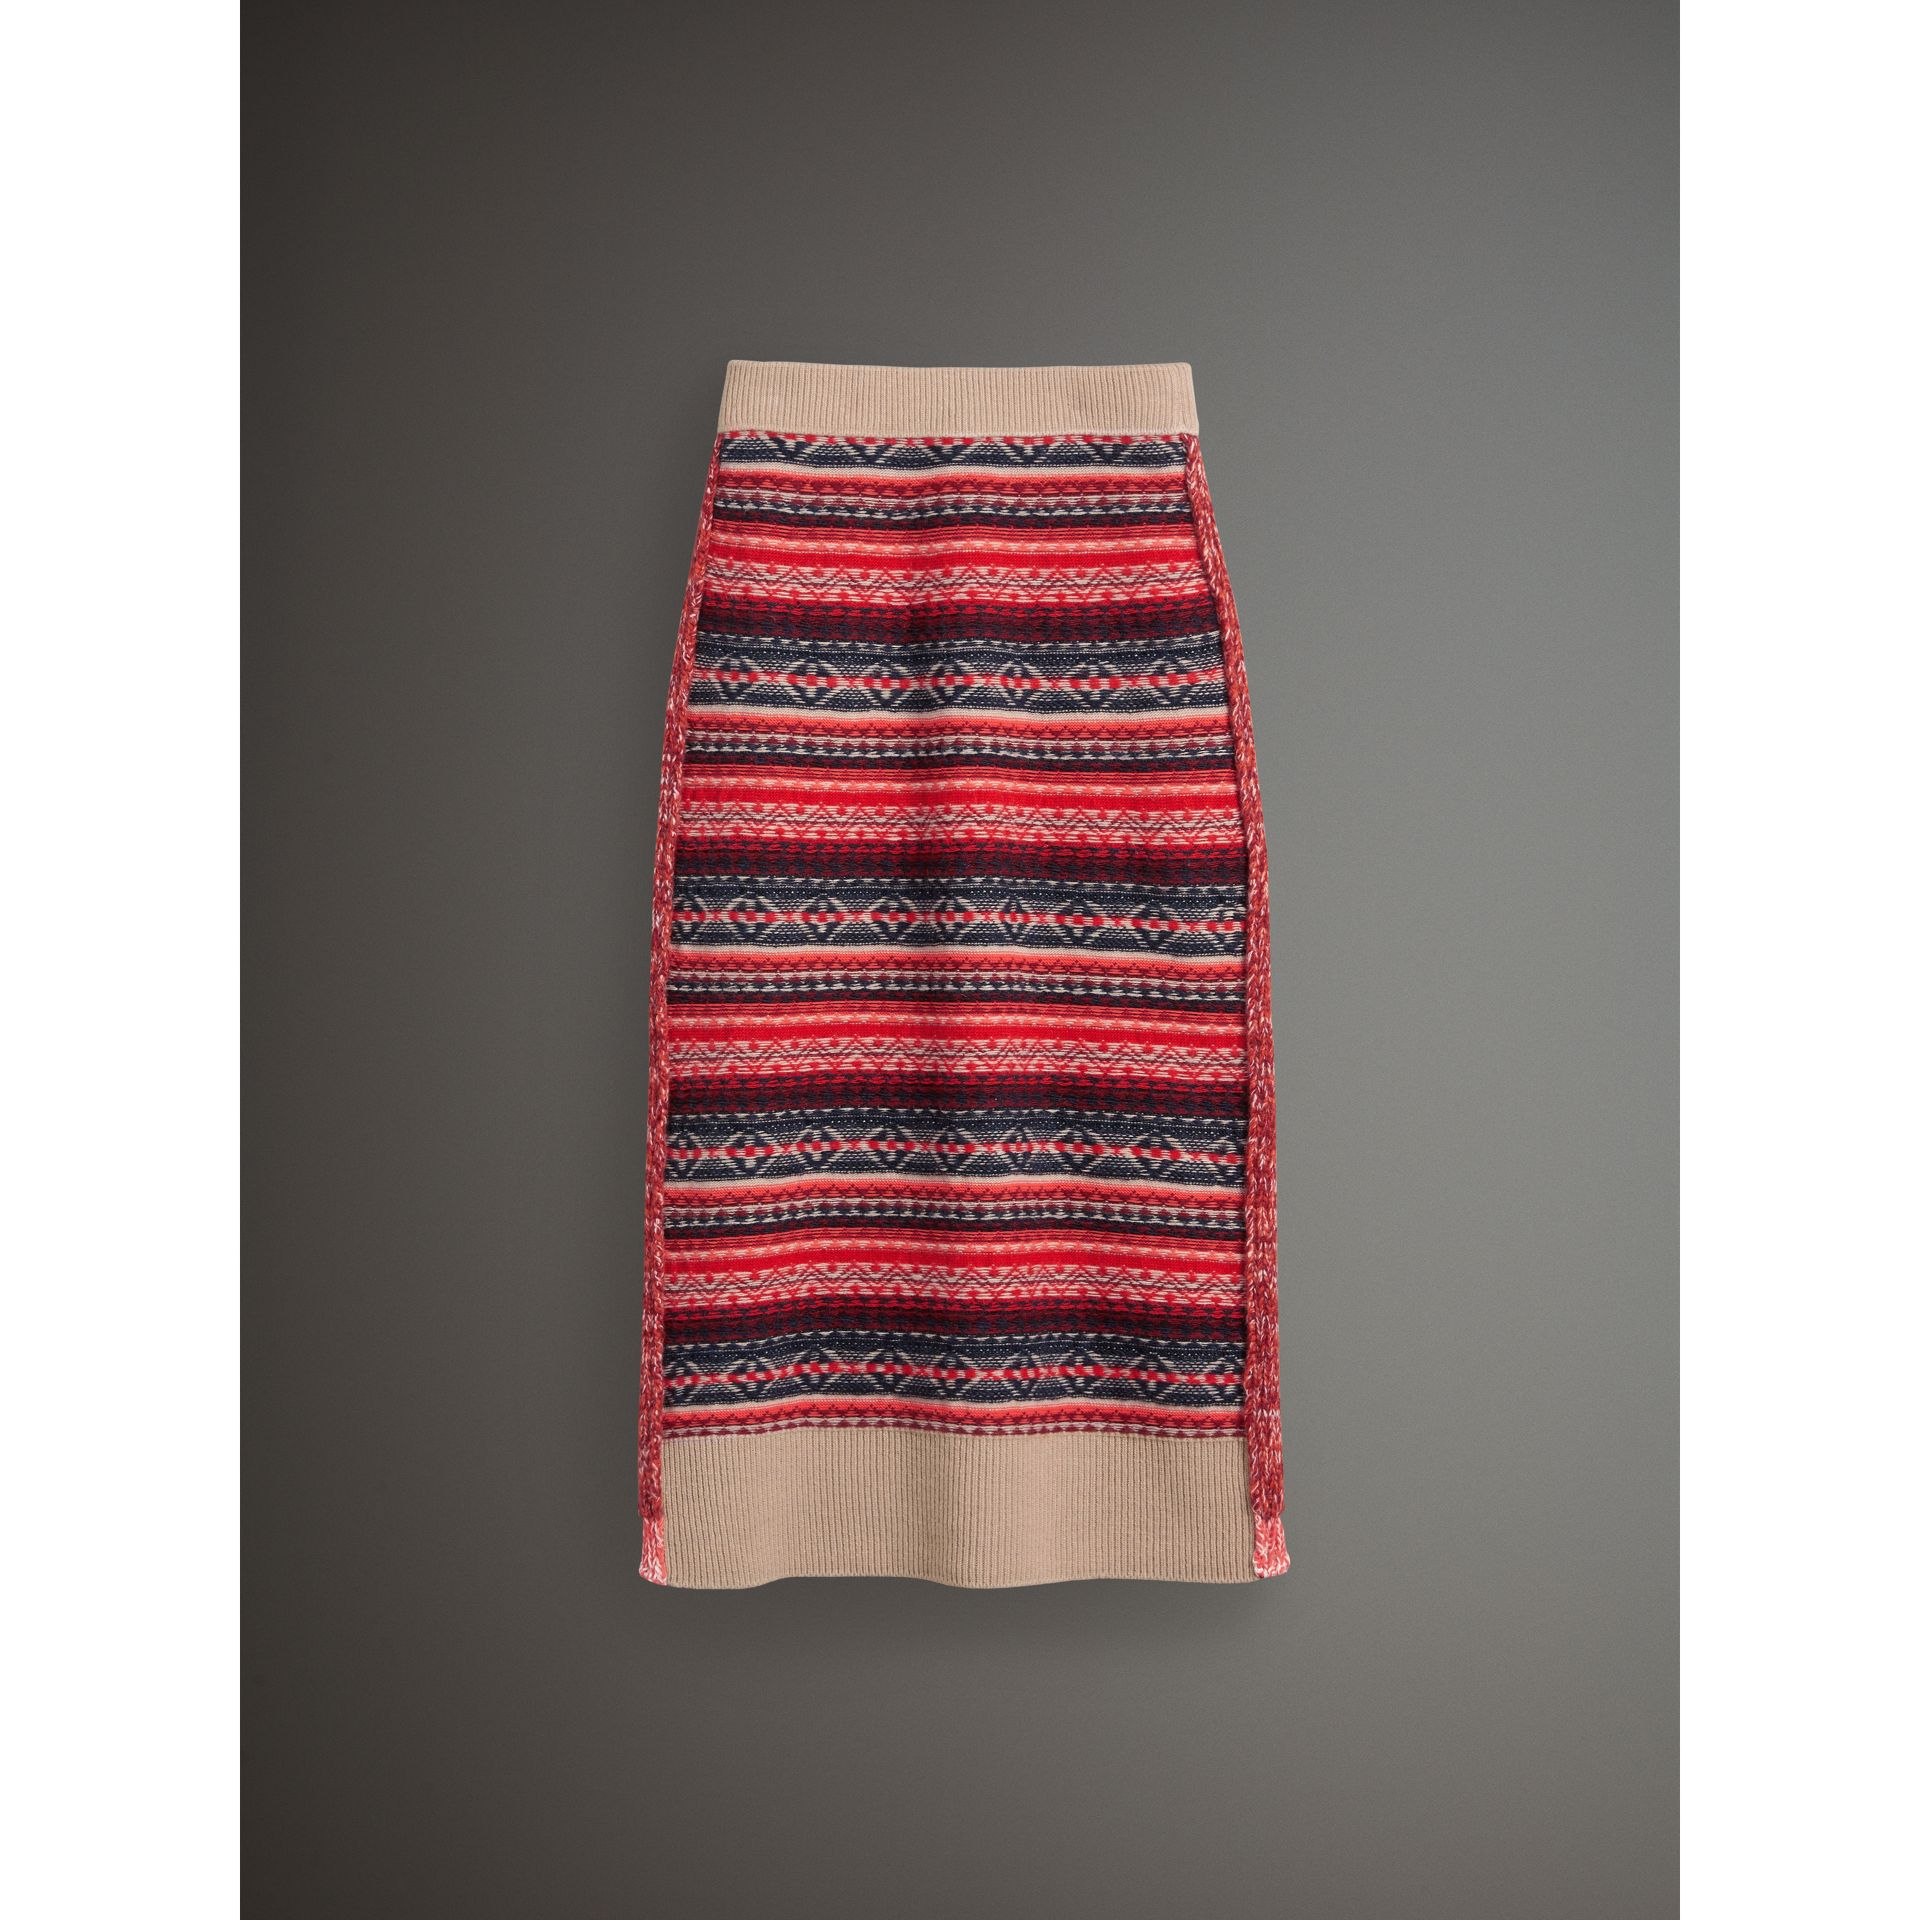 Fair Isle and Cable Knit Wool Cashmere Blend Skirt in Multicolour - Women | Burberry United Kingdom - gallery image 3